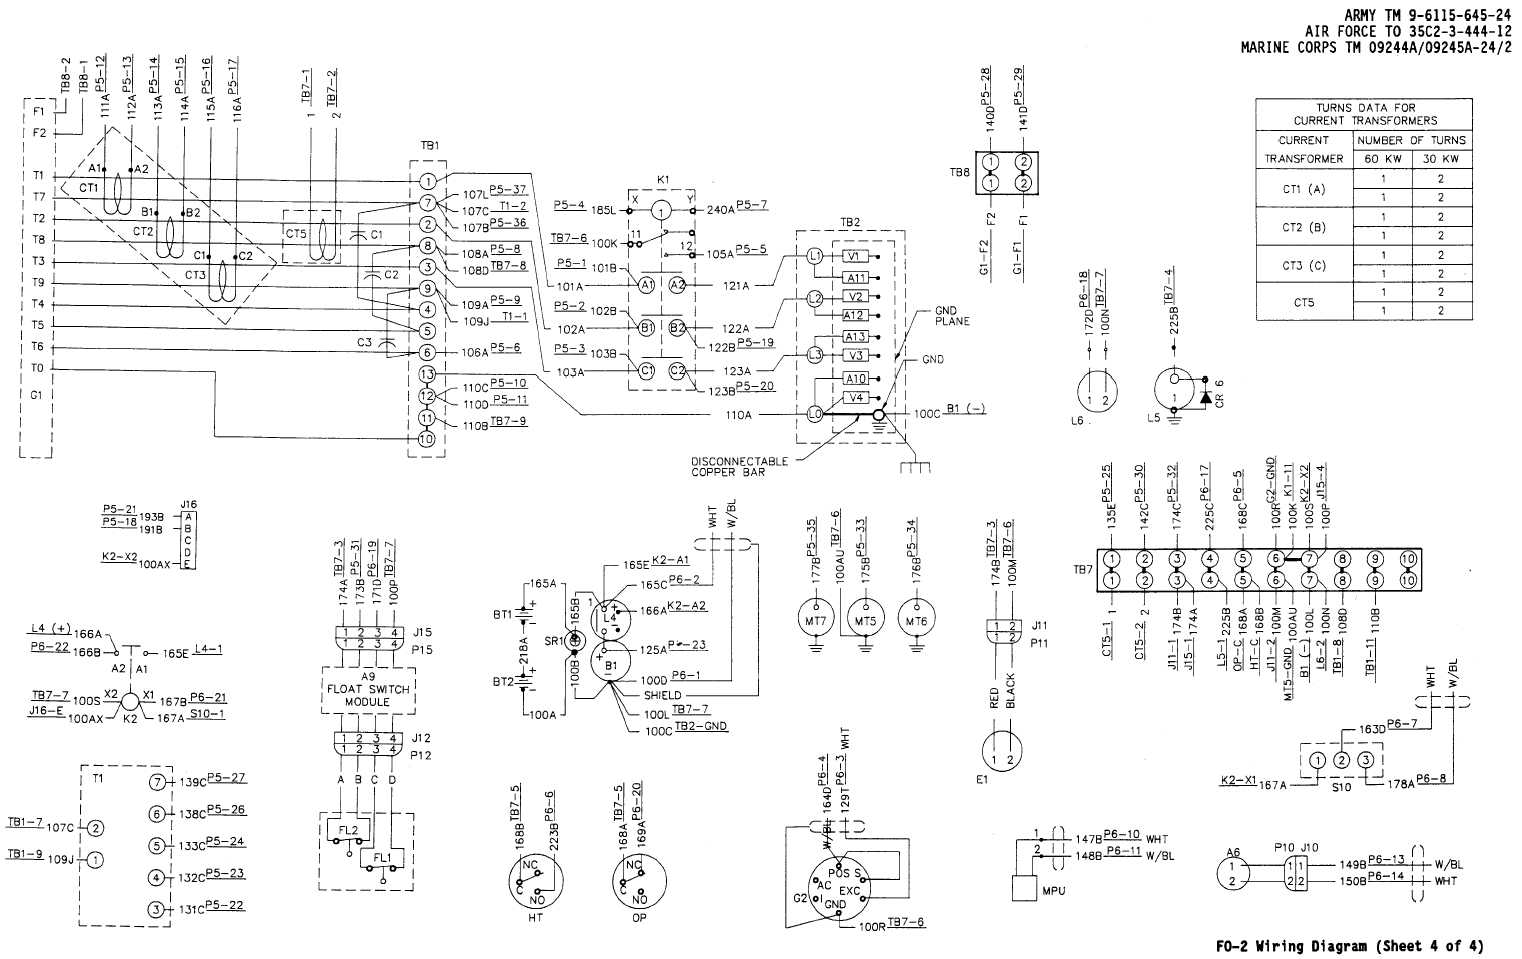 Fo 2 Wiring Diagram Cont